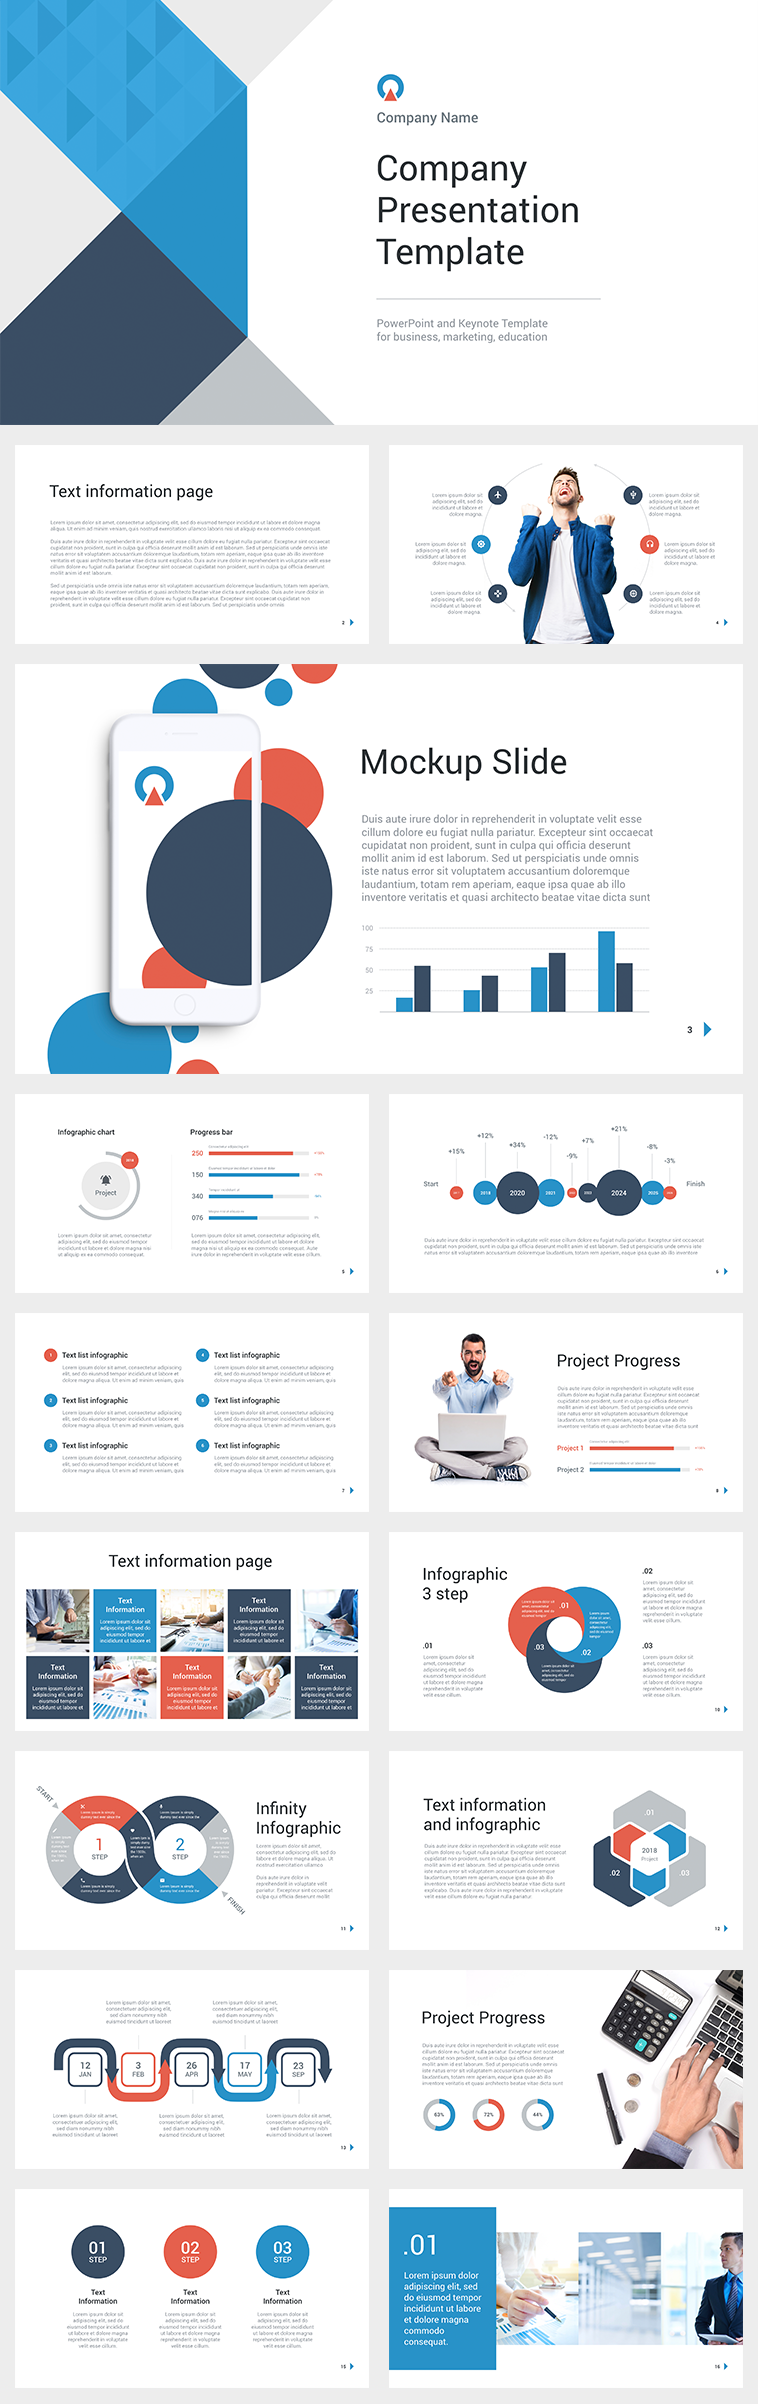 Free Download #PowerPoint Template: https://goo.gl/PC9gNz , Free ...